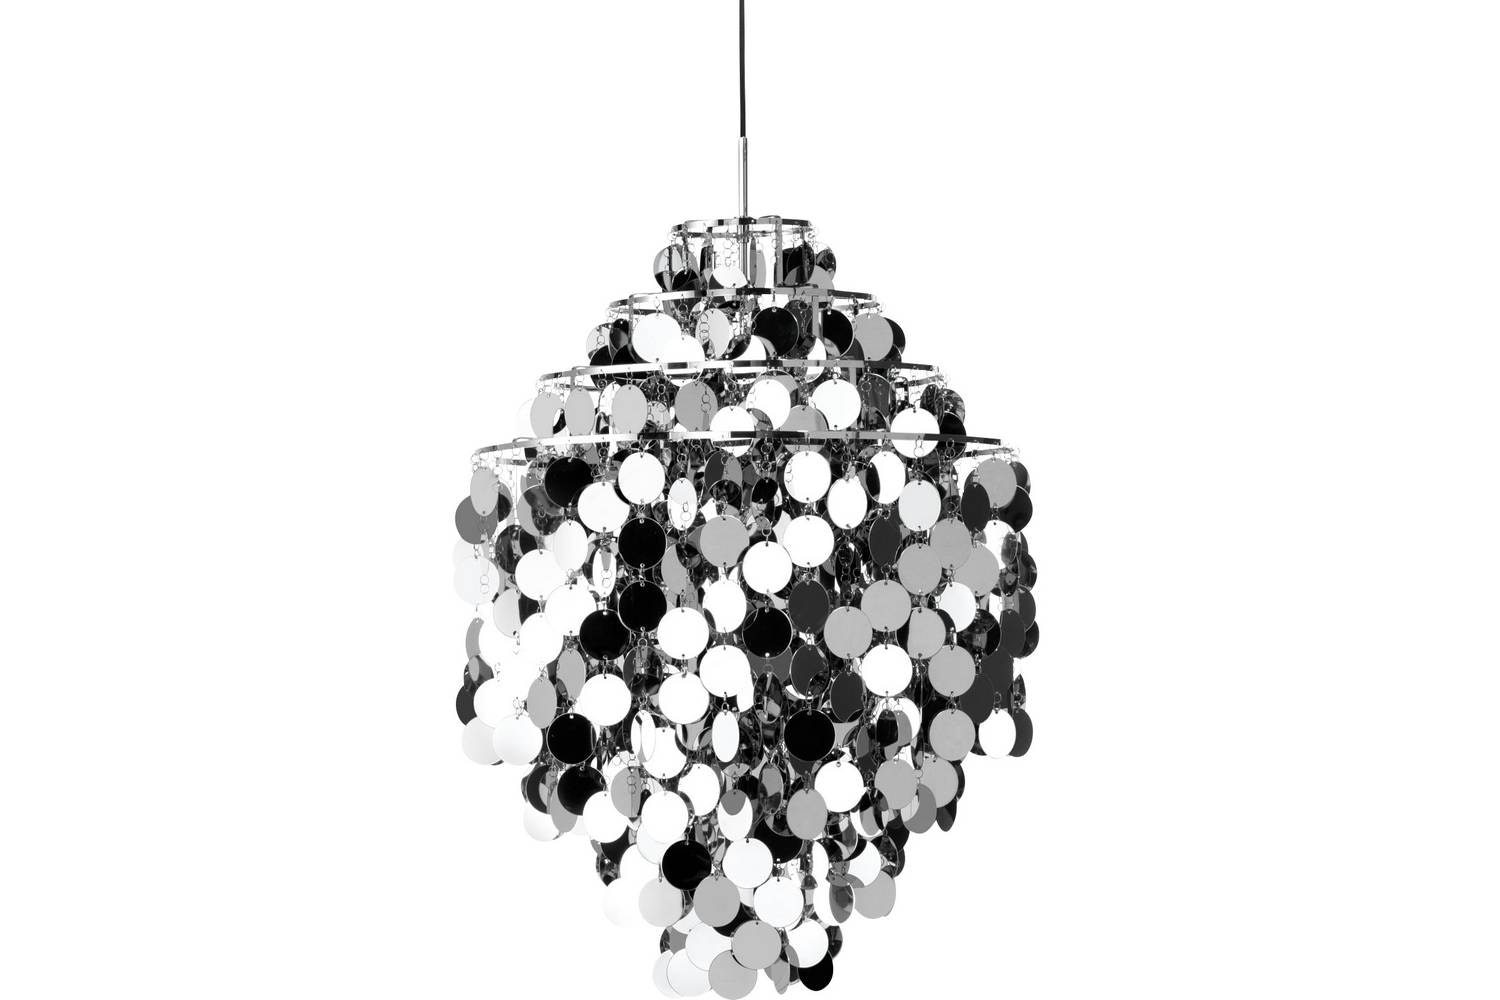 Fun Metal 0DA Pendant Lamp by Verner Panton for Verpan